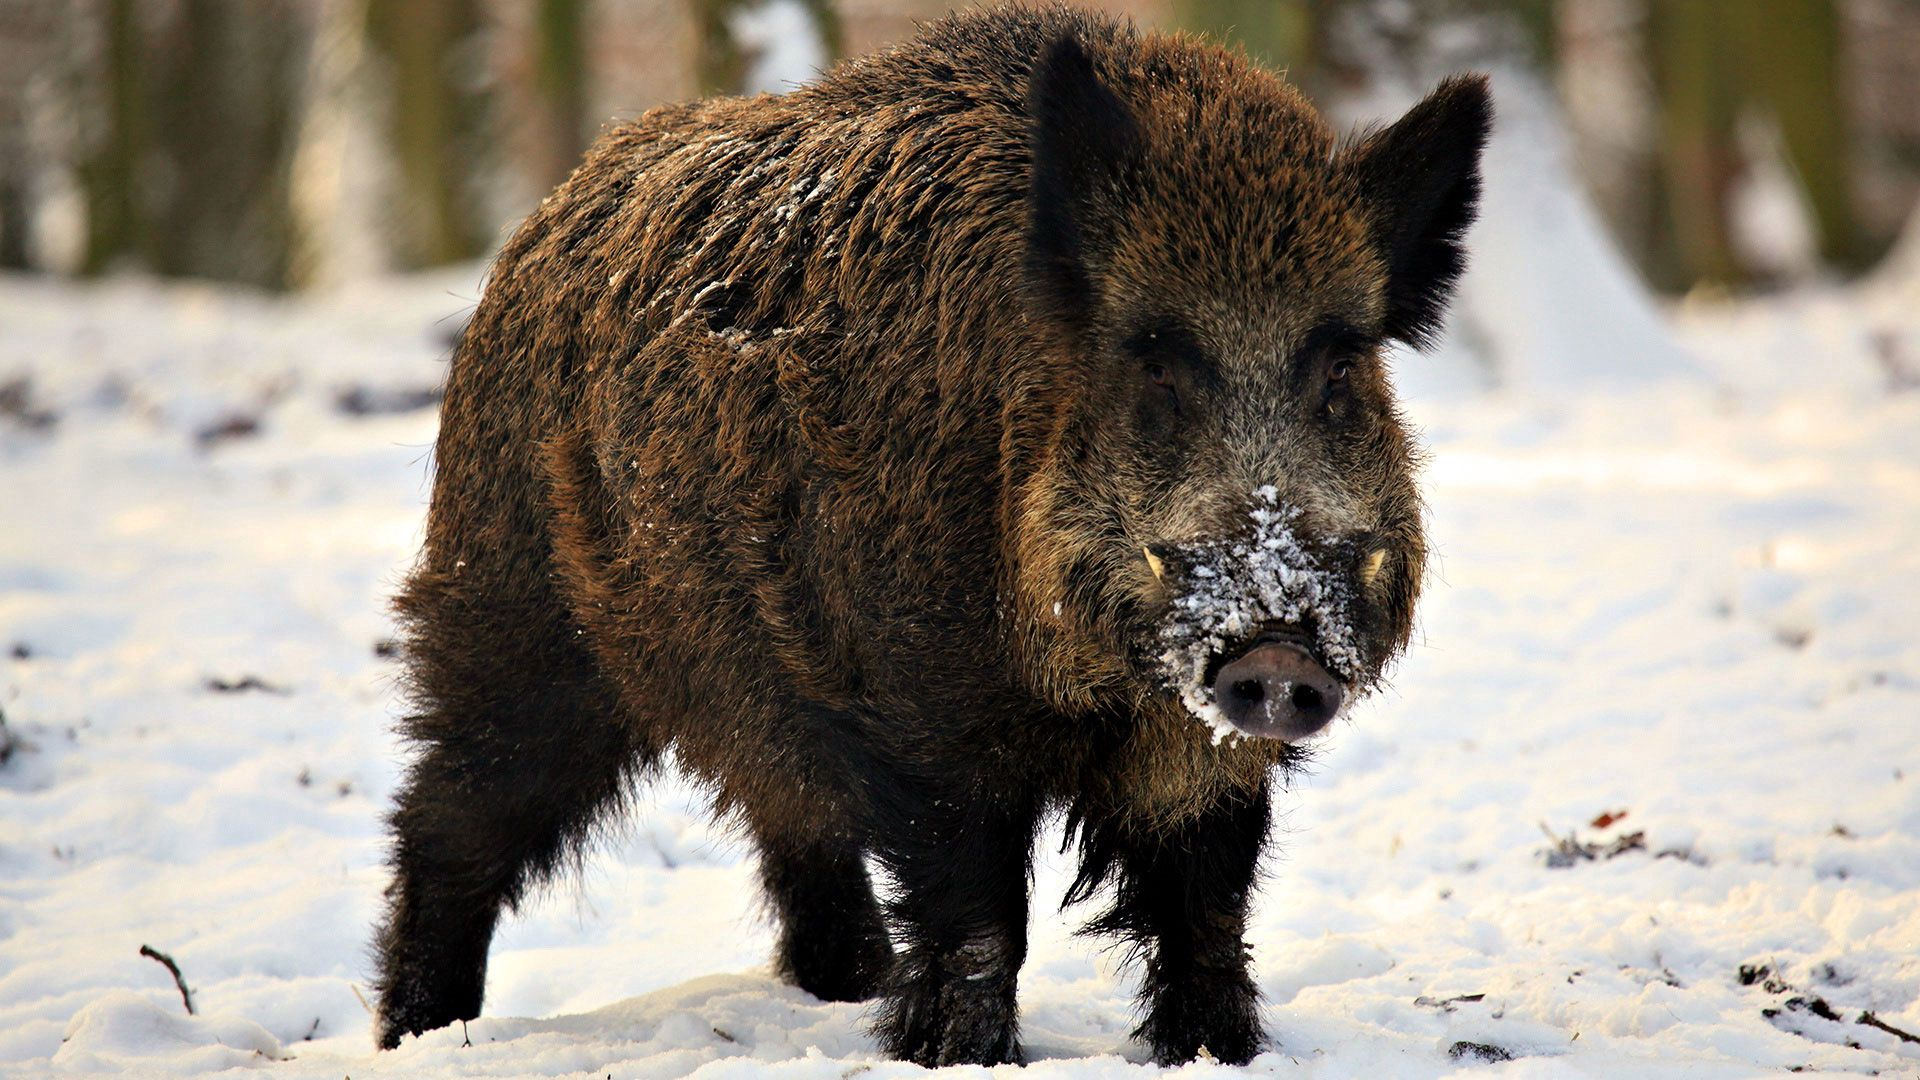 71540 download wallpaper Animals, Fangs, Piglet, Snow, Winter, Boar screensavers and pictures for free